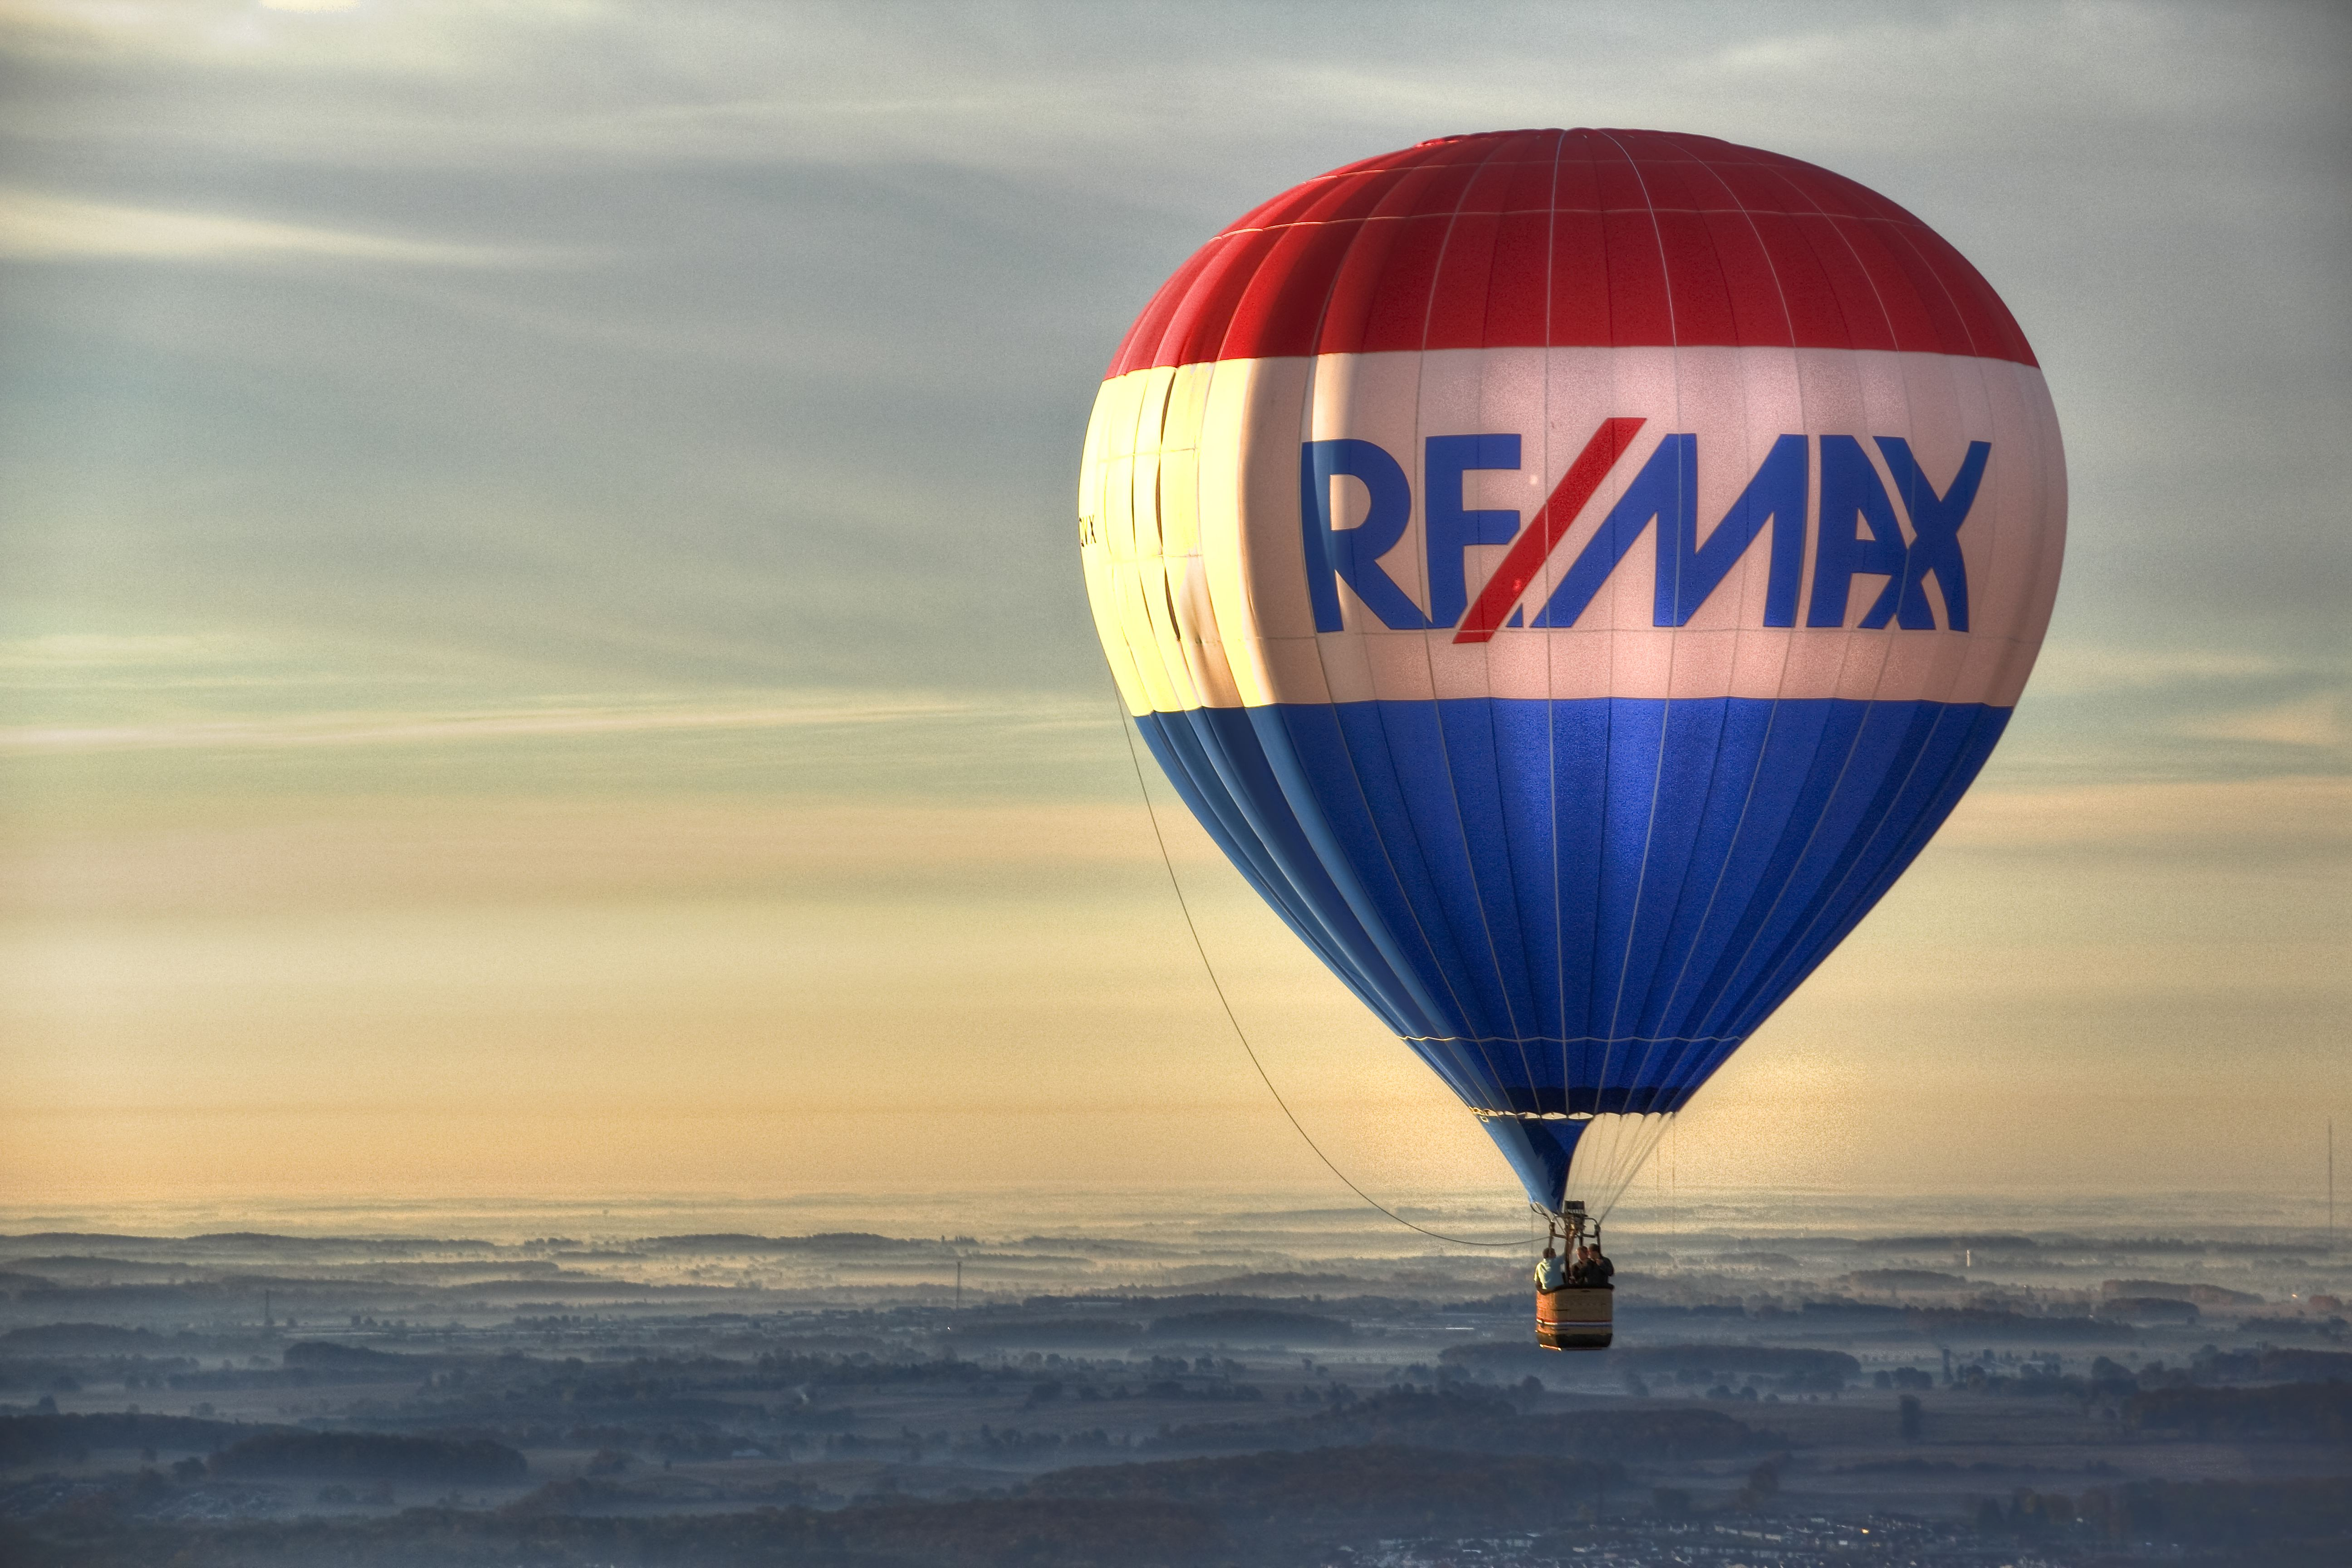 RE/MAX sells more homes than anybody else